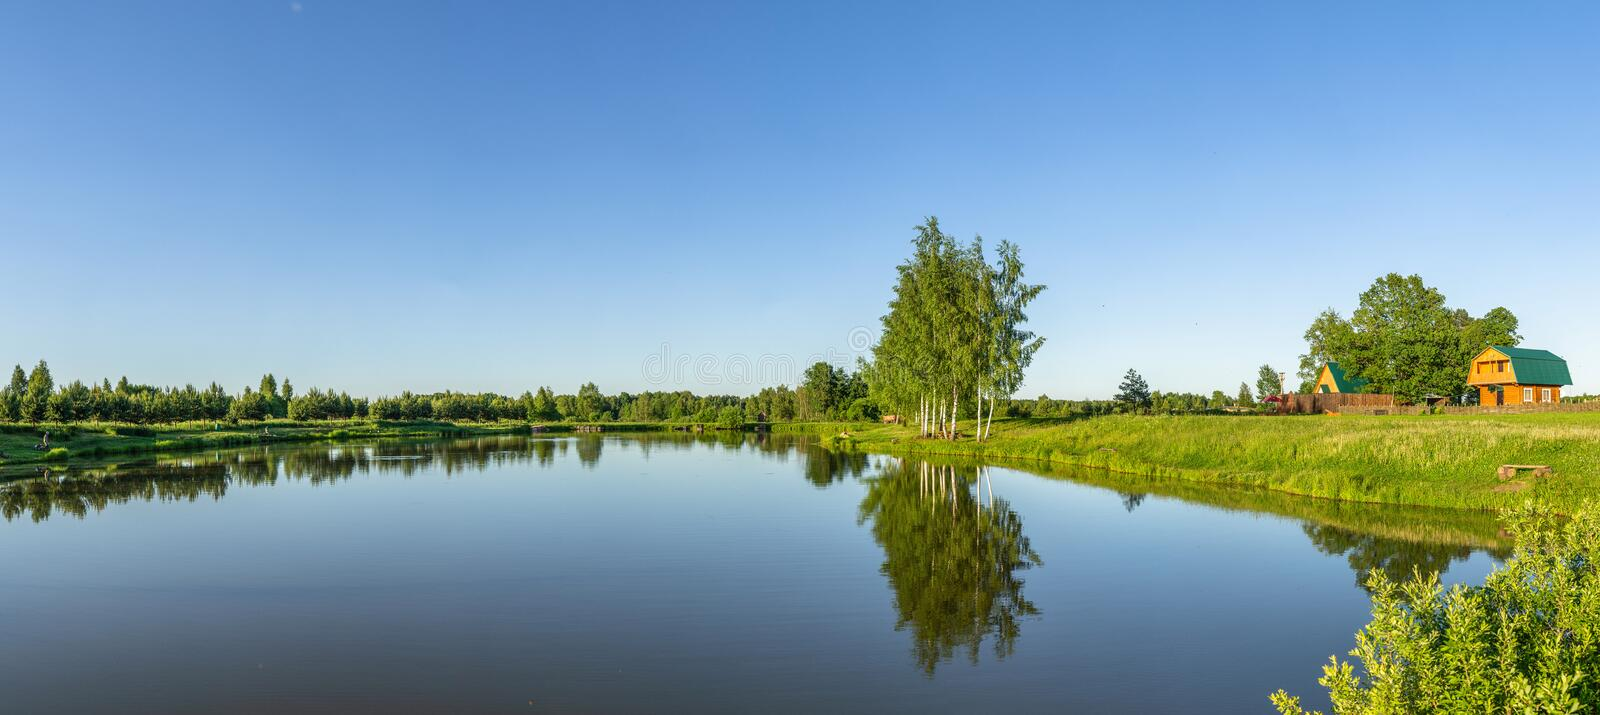 Landscape with a pond at sunset in Central Russia. The landscape at sunset is rich in colors. Illuminated by Golden sunlight, fields, meadows, trees, hills and royalty free stock image